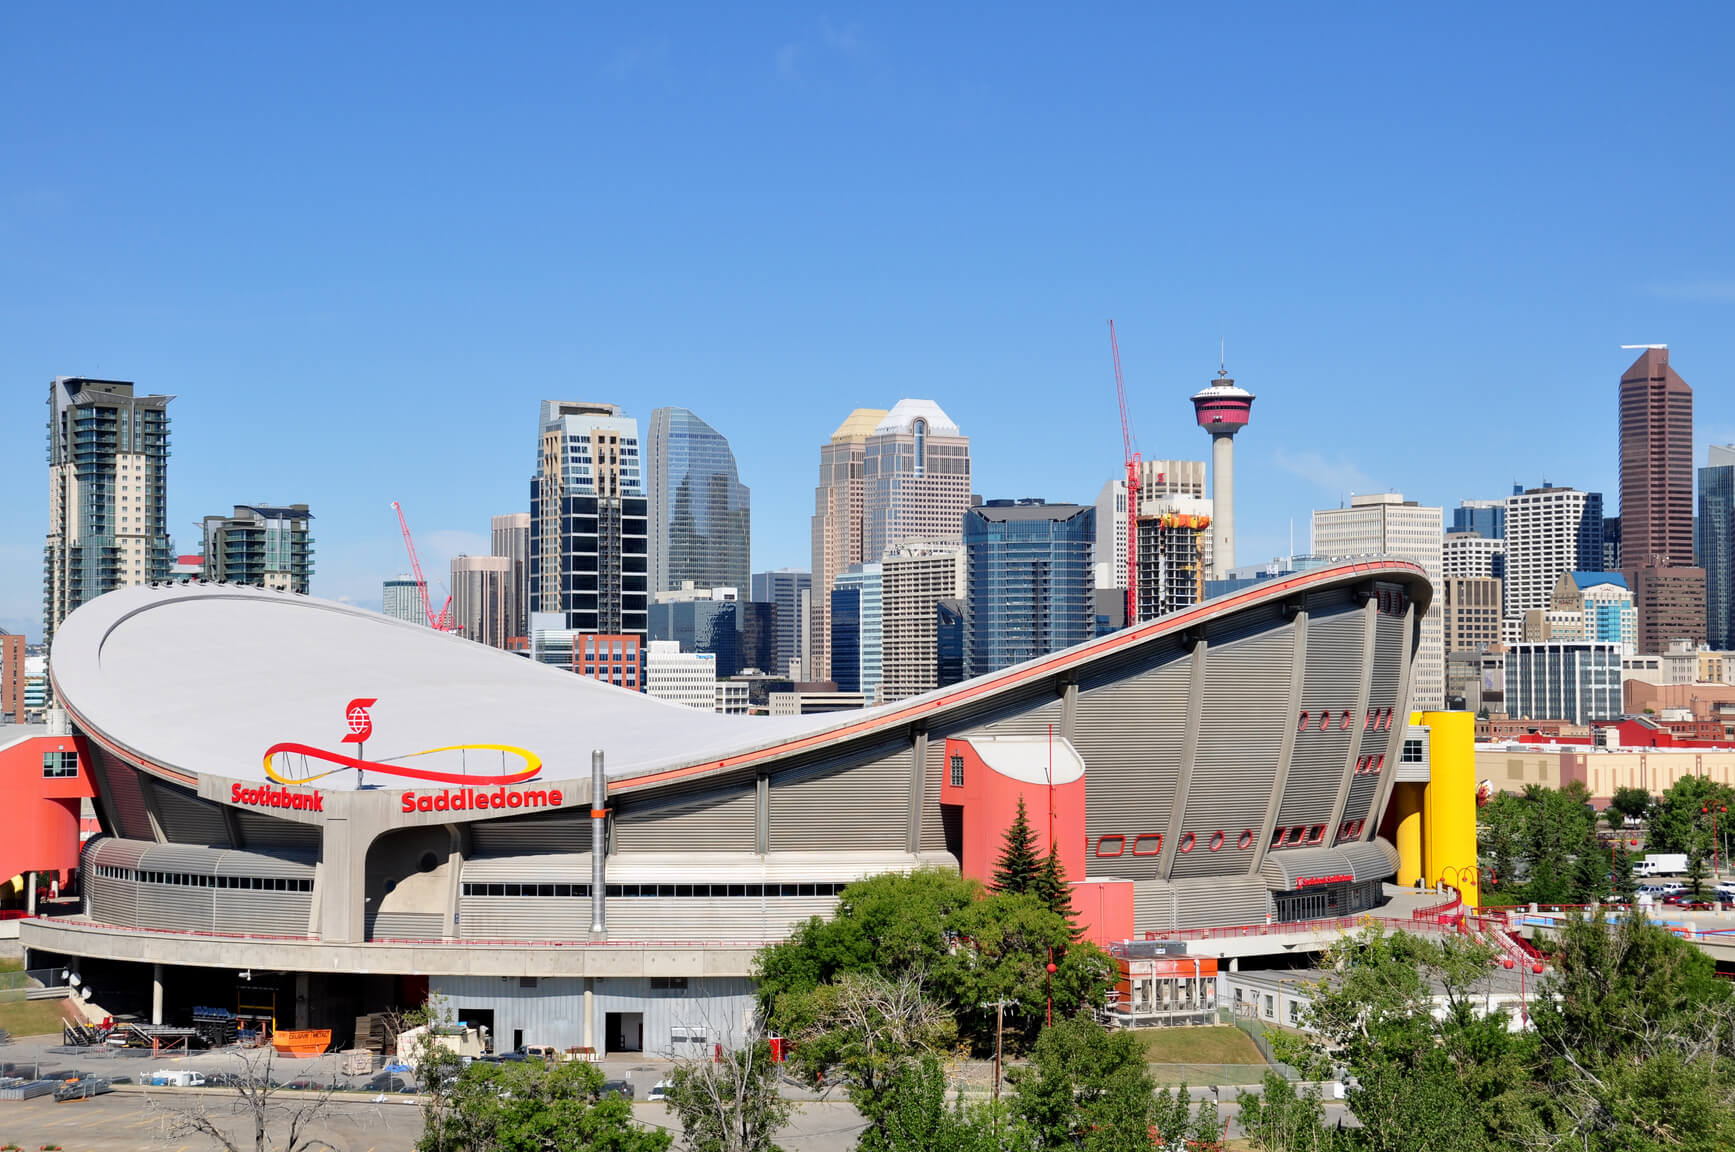 Non-stop from London, UK to Calgary, Canada for only £340 roundtrip (Sep-Mar dates)